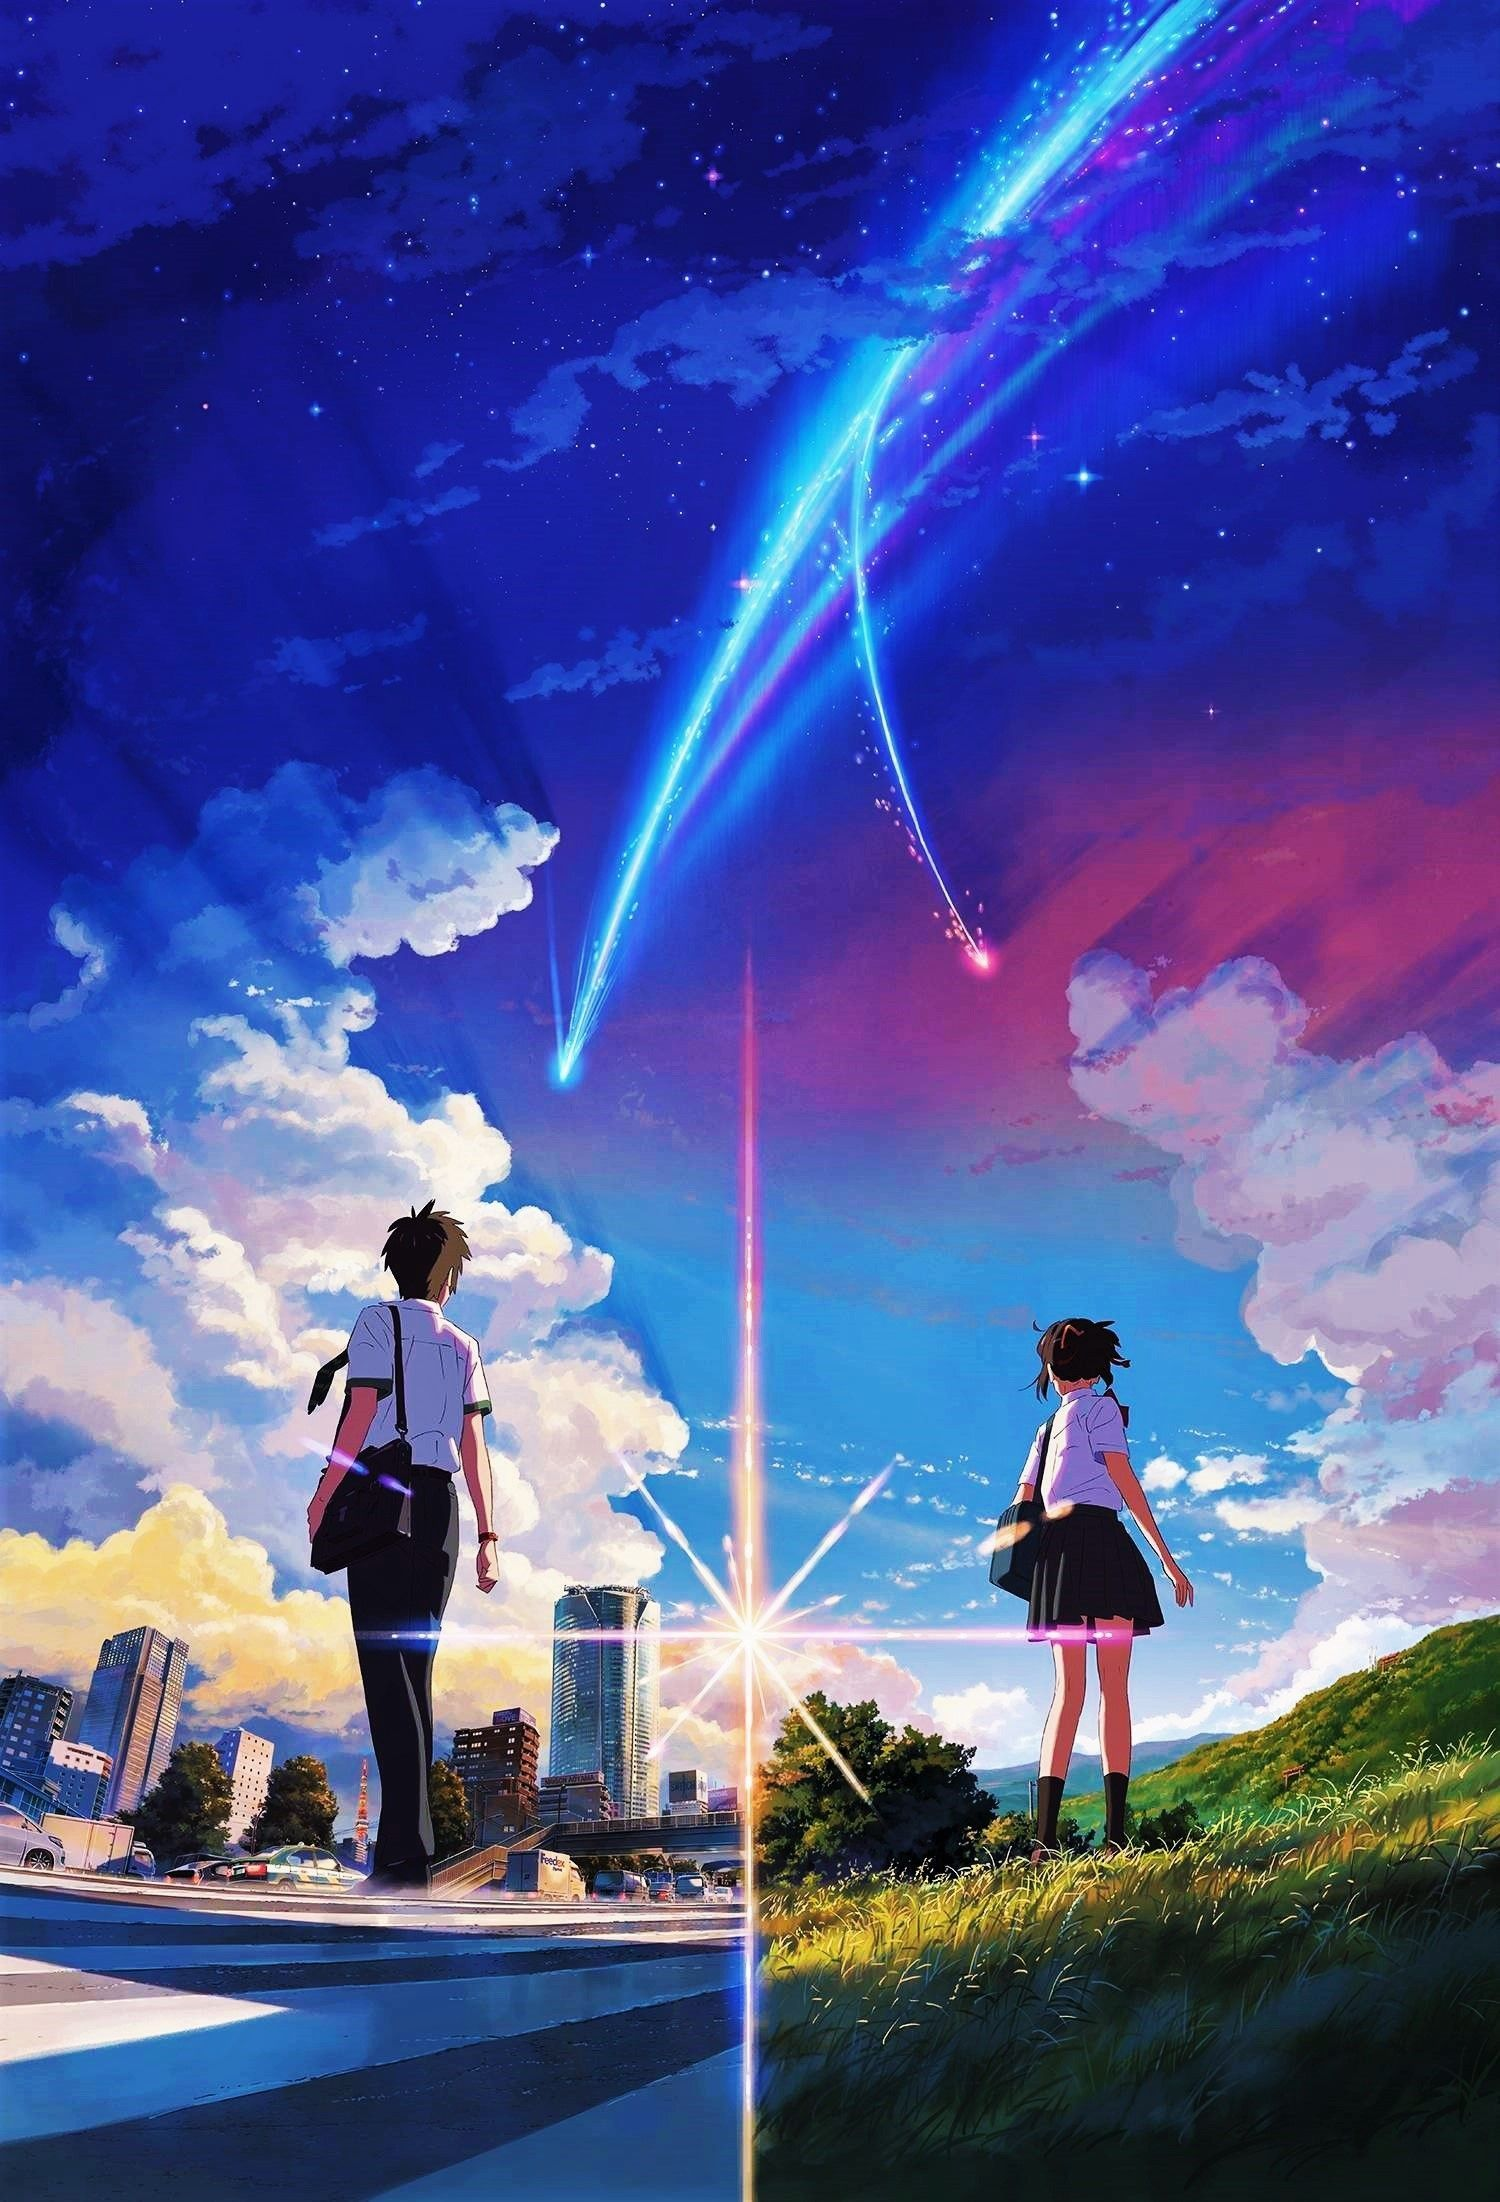 Your Name Live Wallpapers Wallpaper Cave